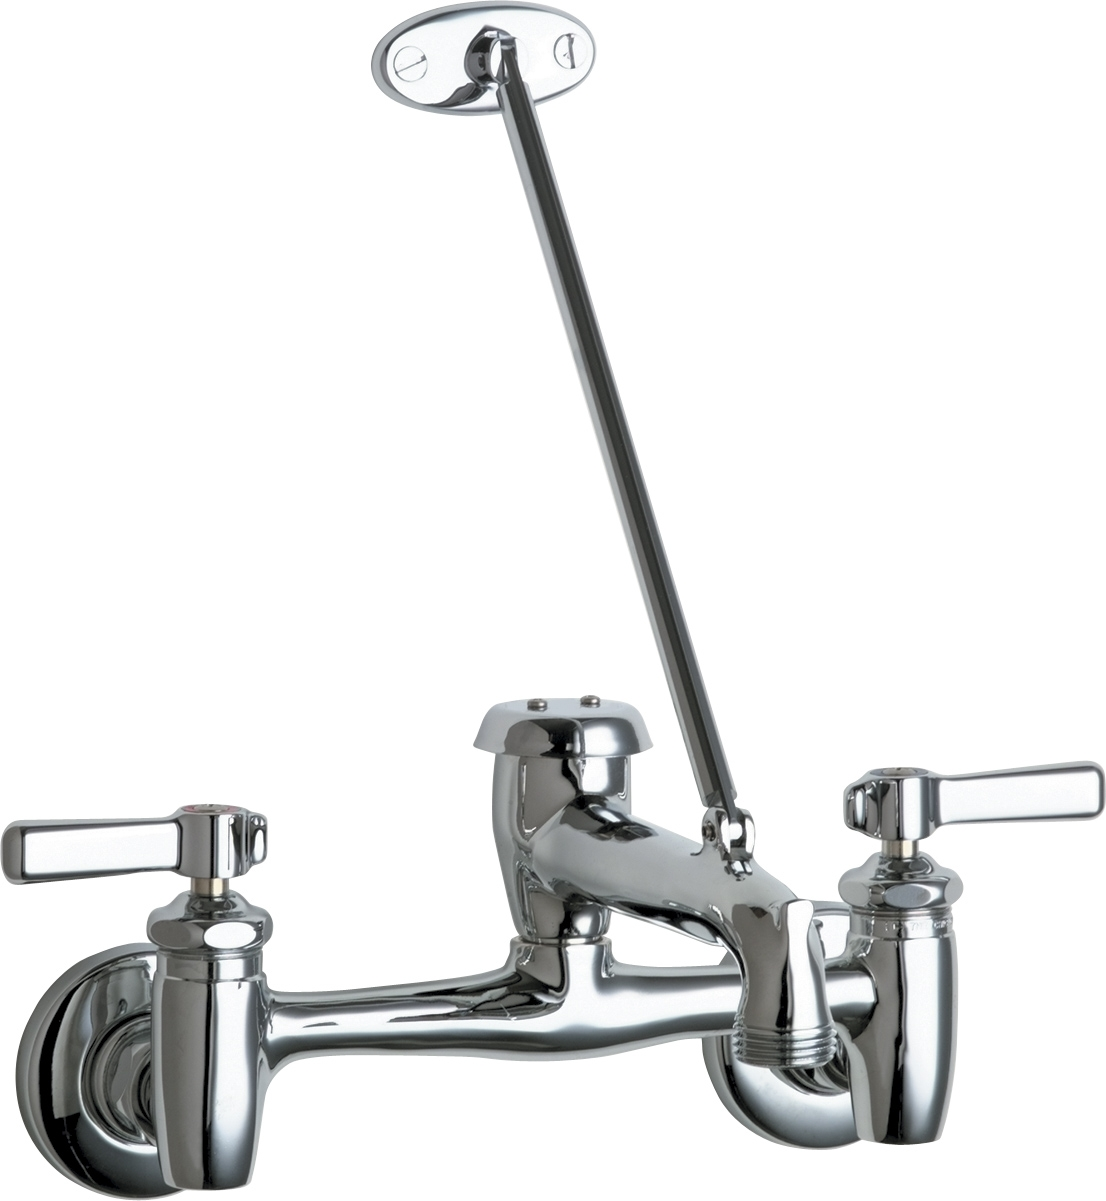 897 ccp manual faucets chicago faucets throughout sizing 1106 x 1201